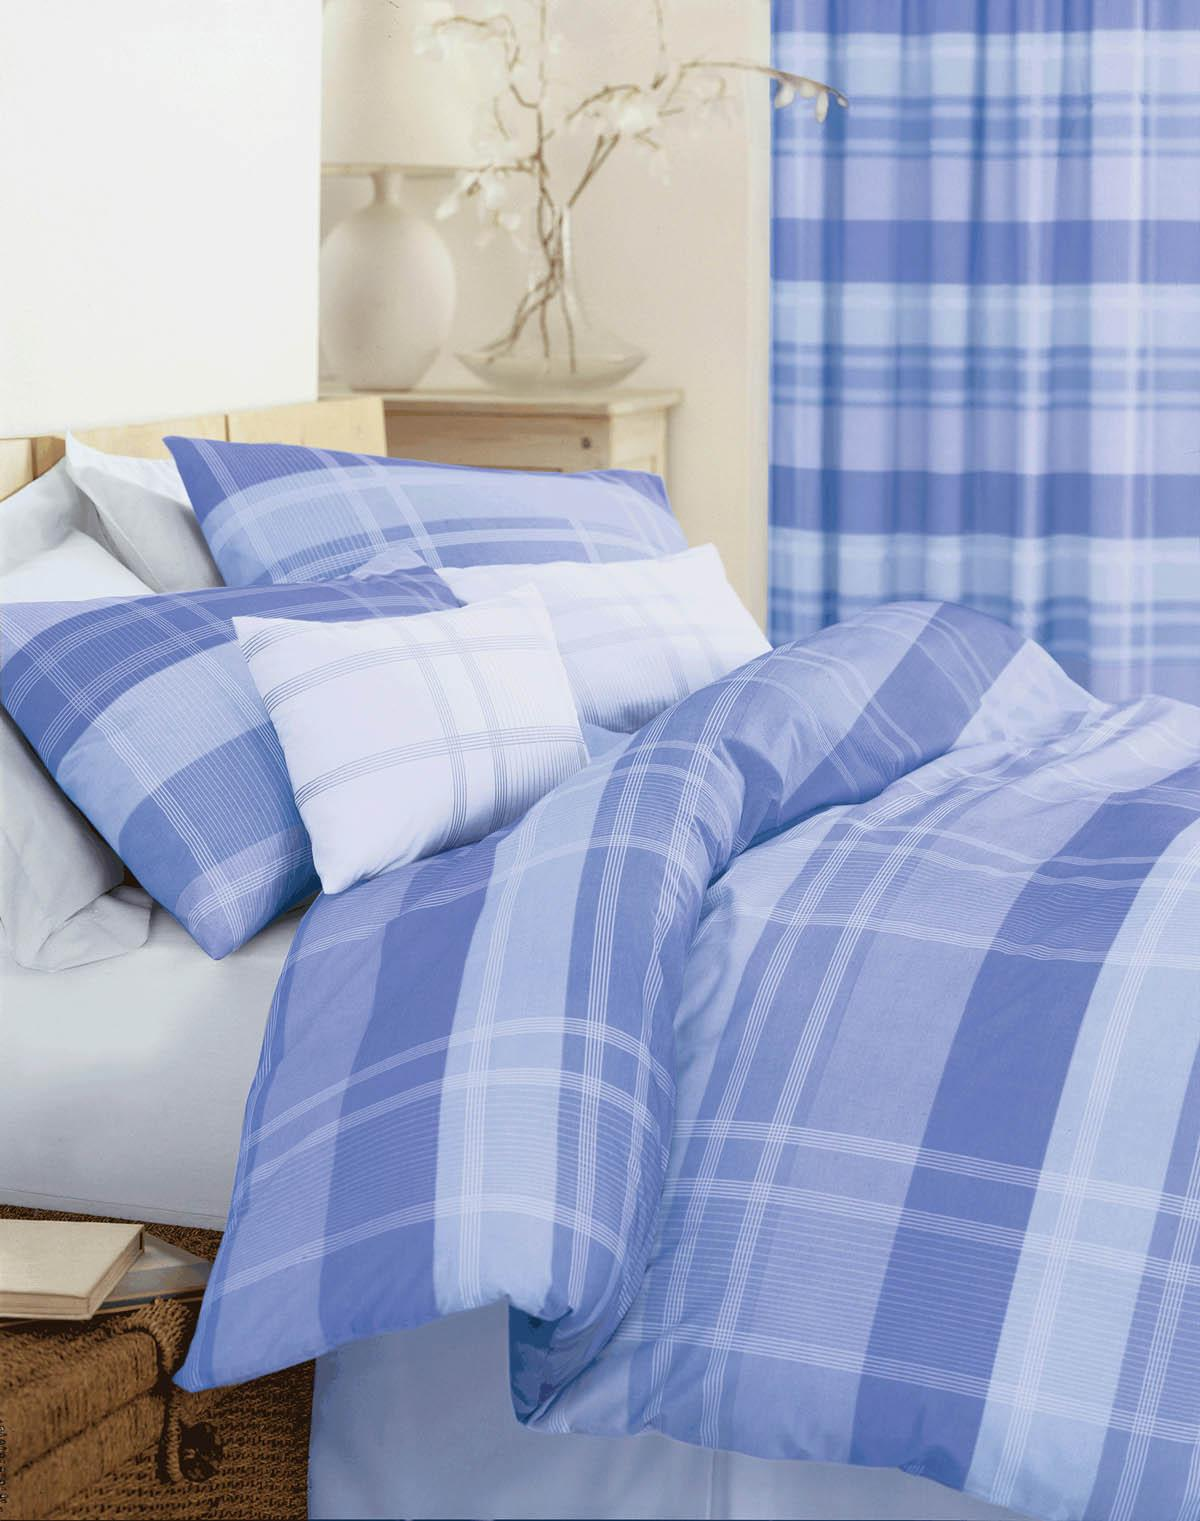 Light Blue Duvet Set Buy Cheap Rust Colored Comforters Or Duvet Compare Home